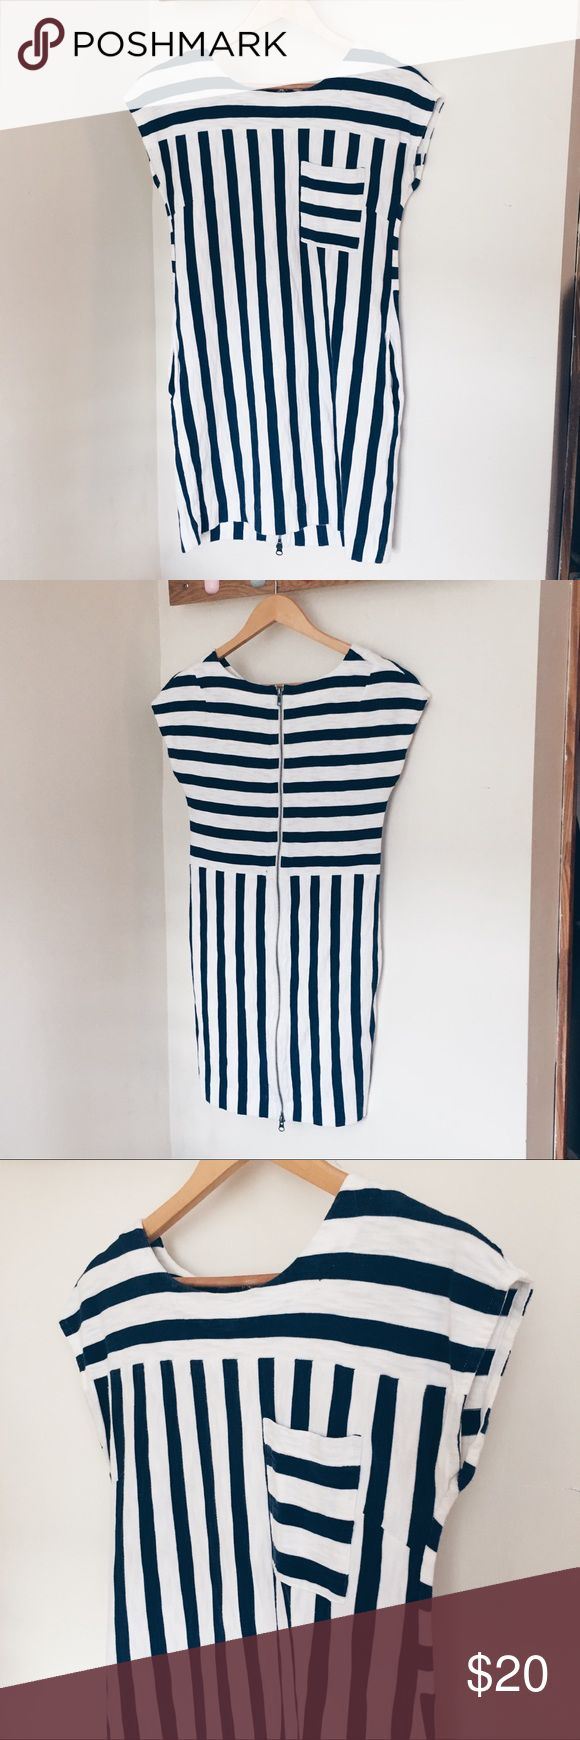 Weekend dress! MADEWELL blue striped dress This cute little dress is the best outfit for your brunch dates! You would look so cute and casual in this lovely dress!! Madewell Dresses Mini